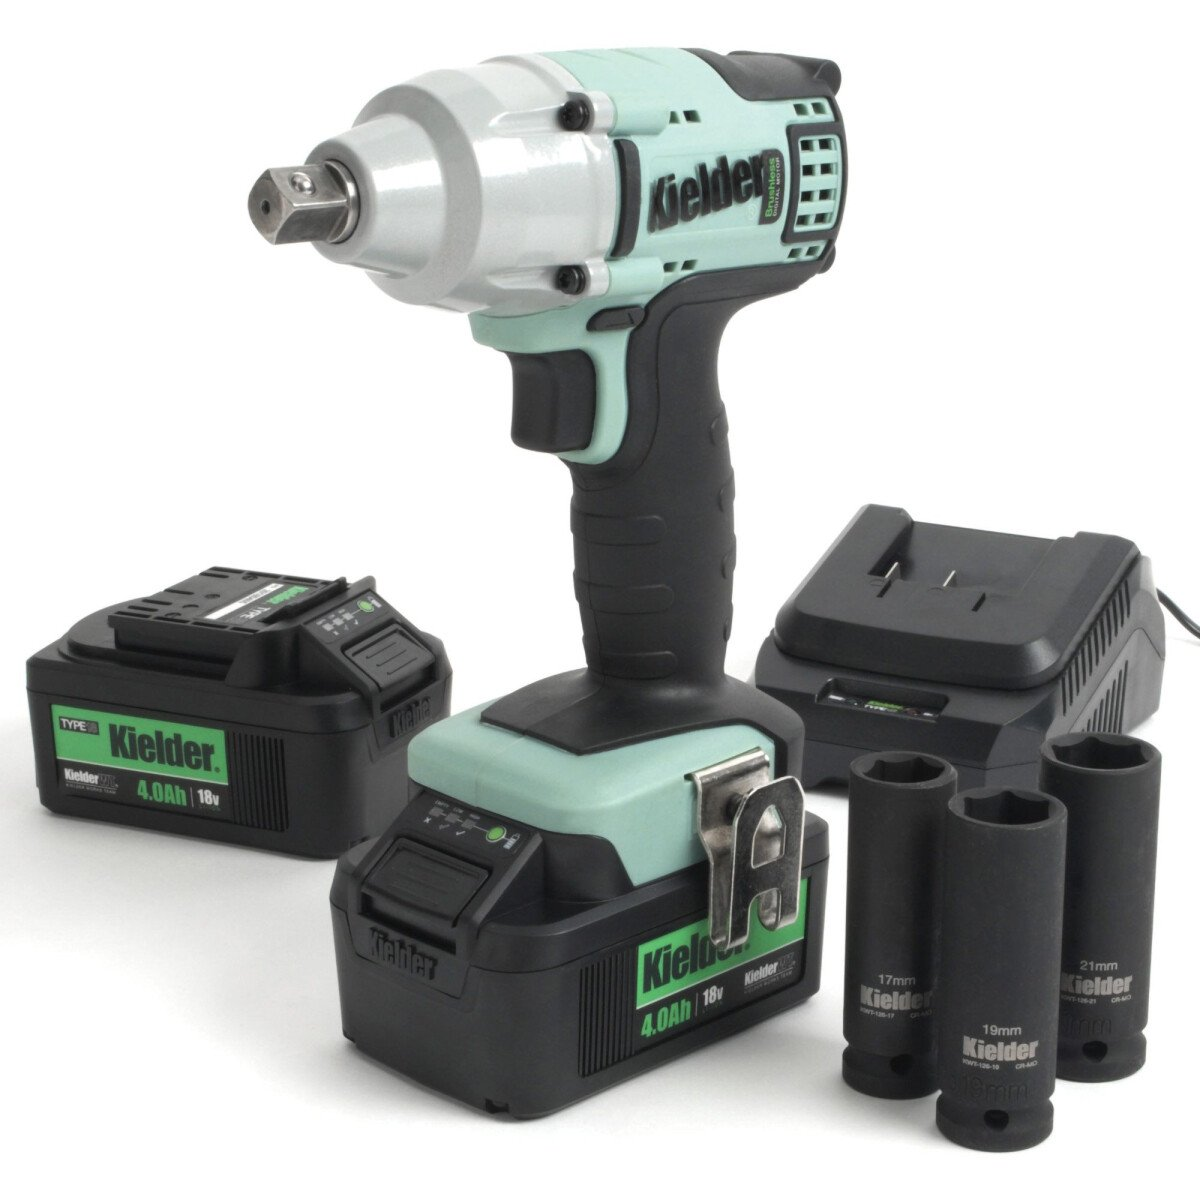 Kielder KWT-002-08 1/2in Impact Wrench Kit 430Nm 18V With 2 x 4.0Ah Li-ion Batteries in Stackable Carry Case